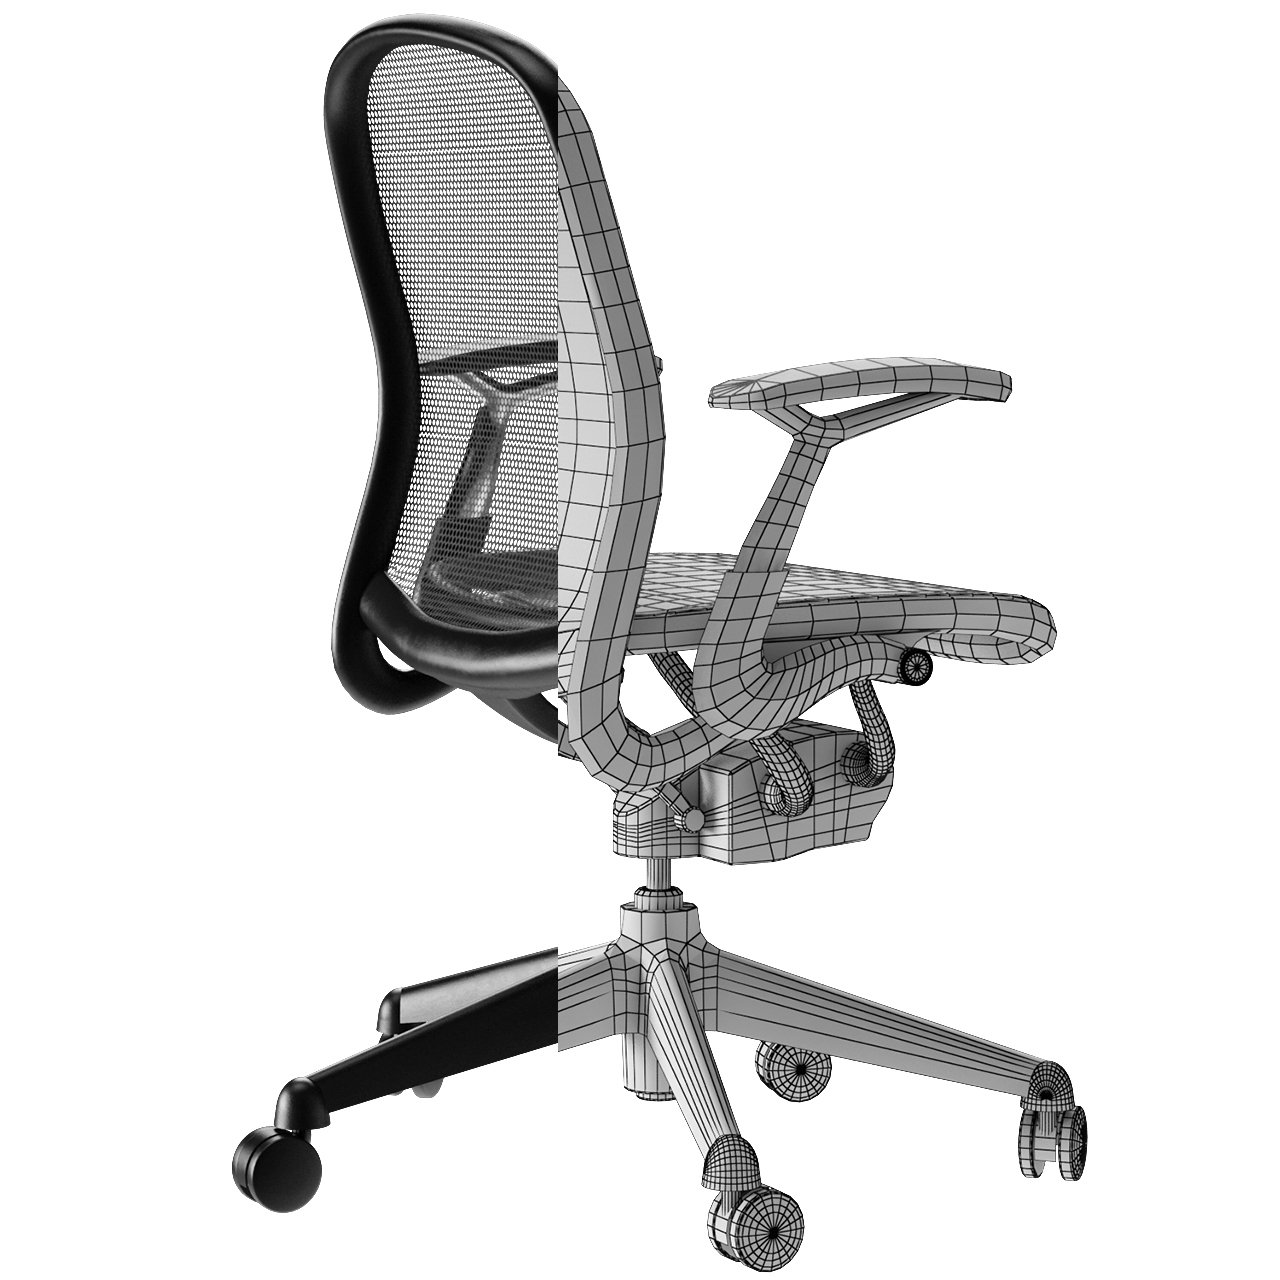 Knoll Chadwick Office Chair 42D Model in Chair 42DExport